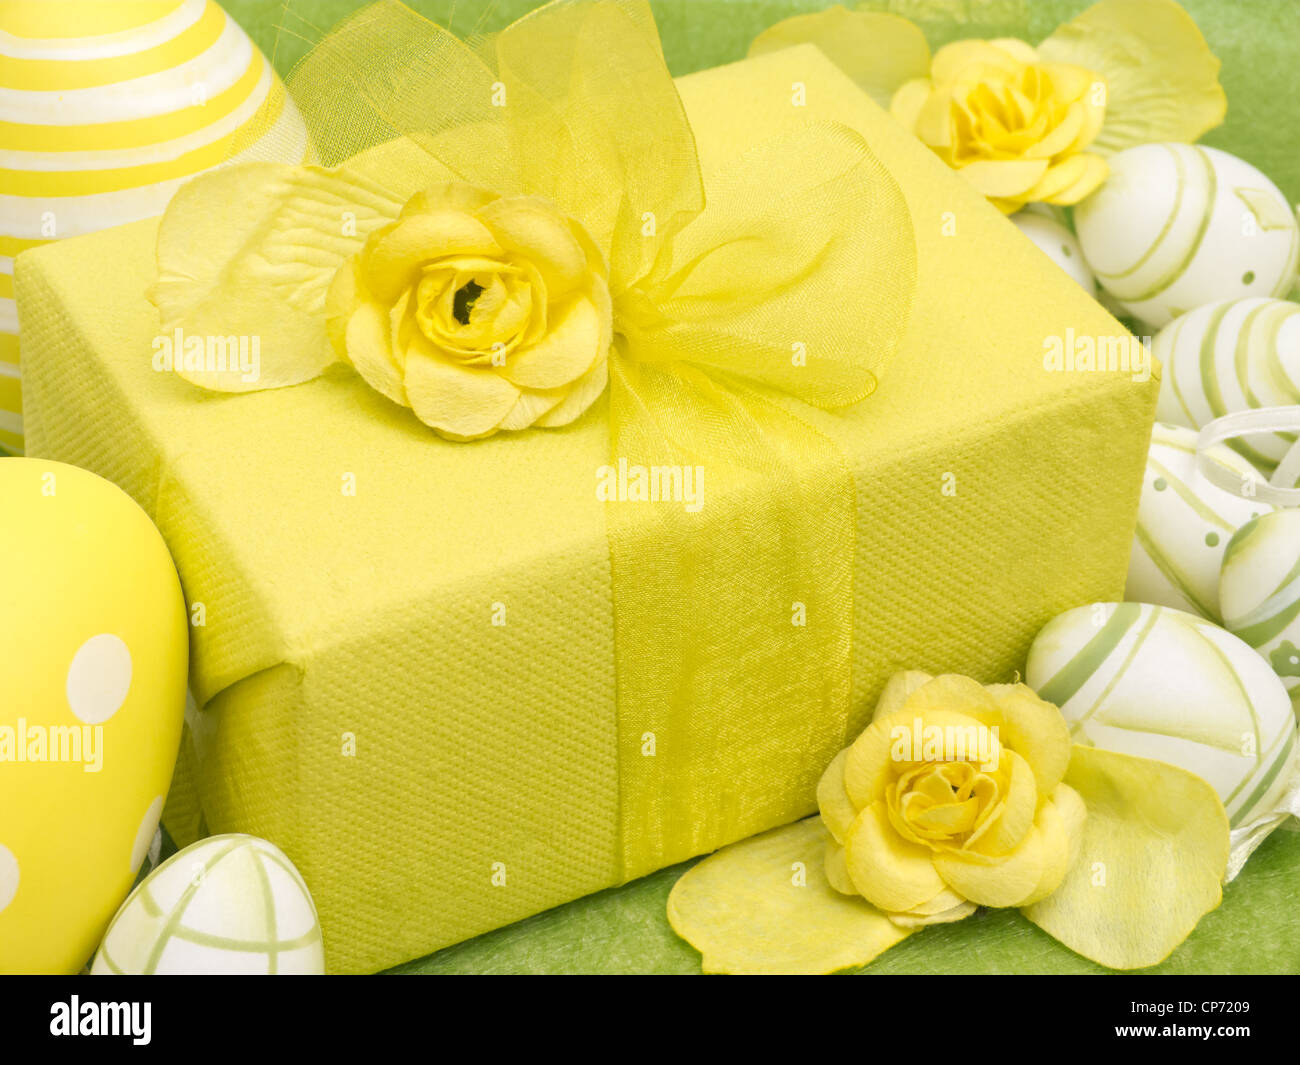 Easter Present - Stock Image